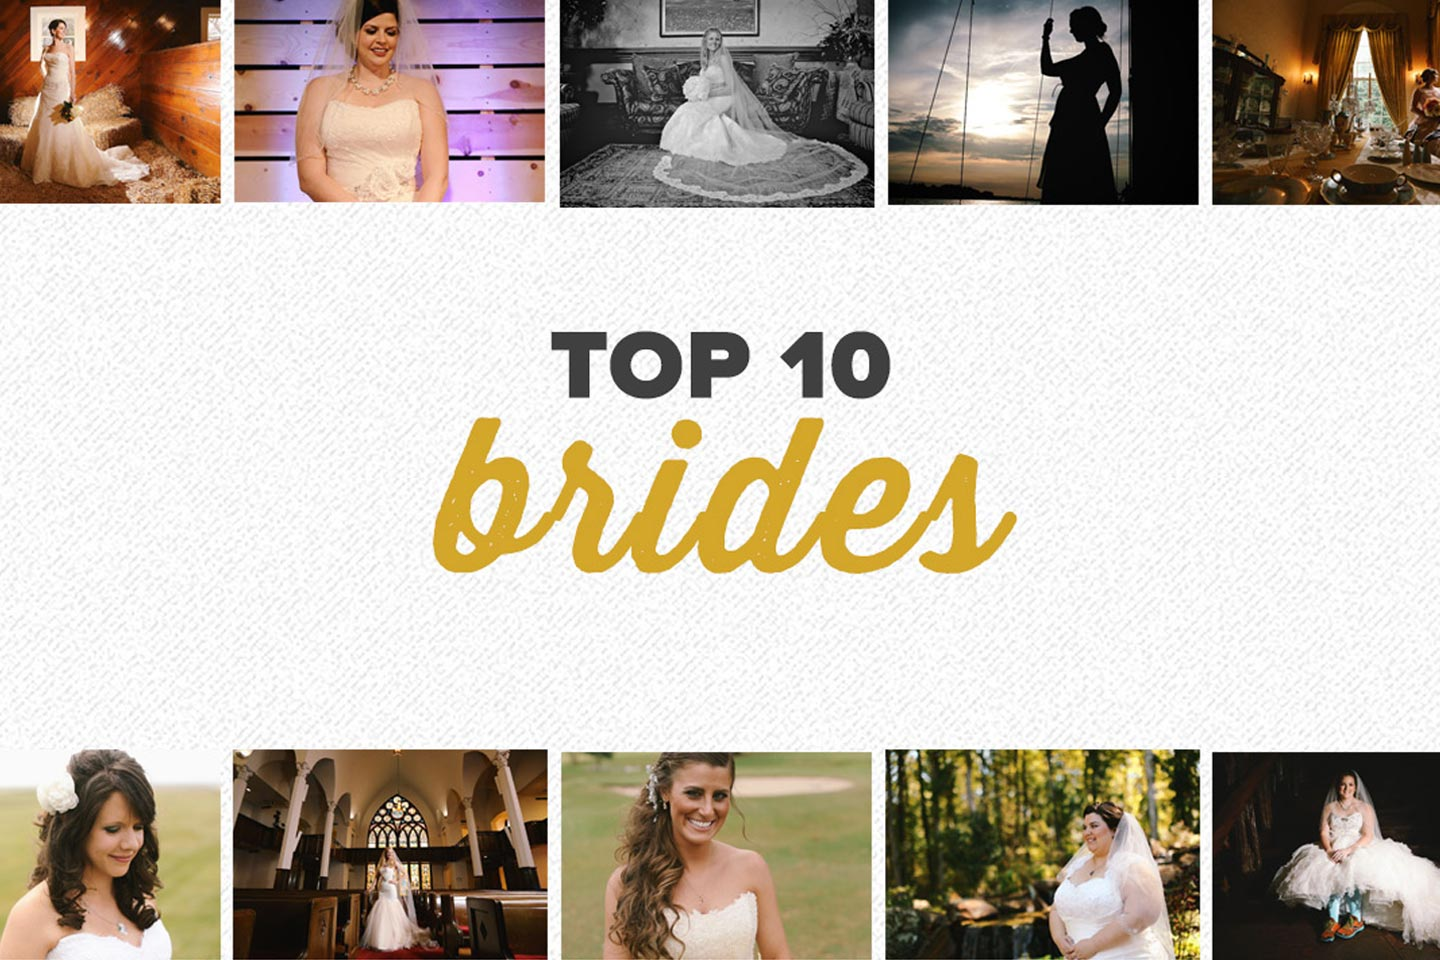 11833top 10 2013 | bridal photos